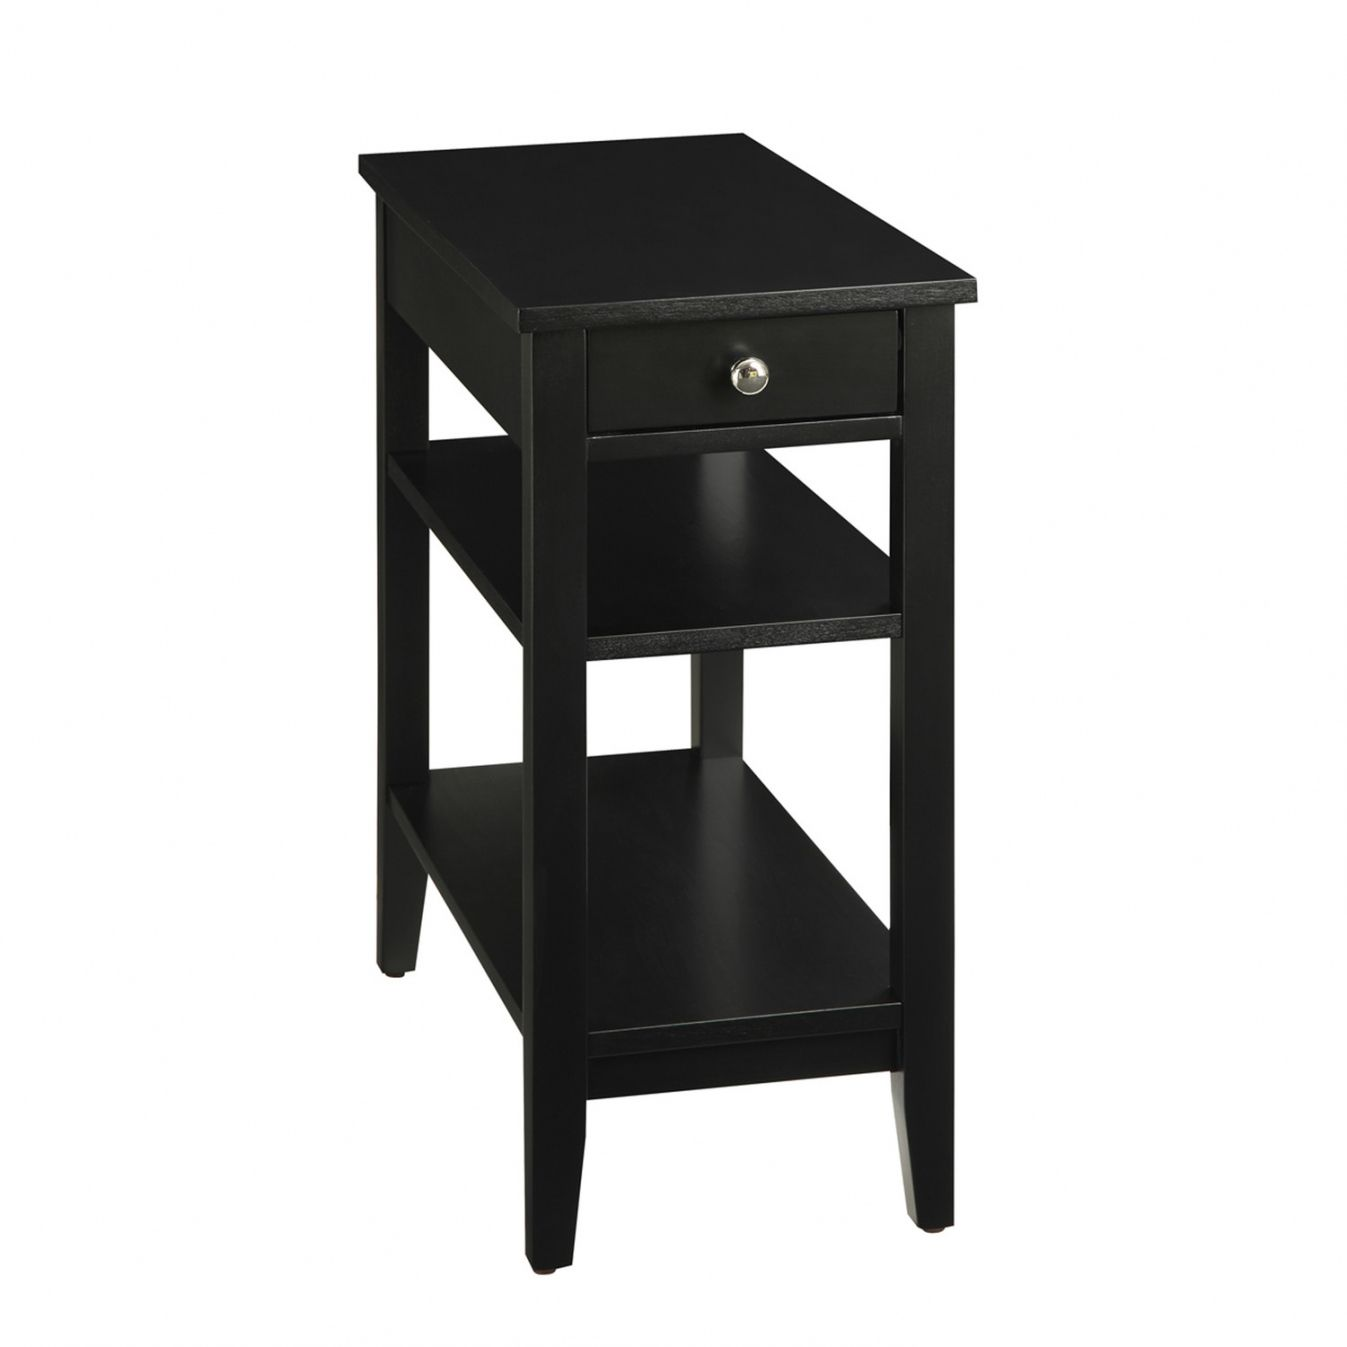 Black End Table with Storage Luxury Modern Furniture Check more at